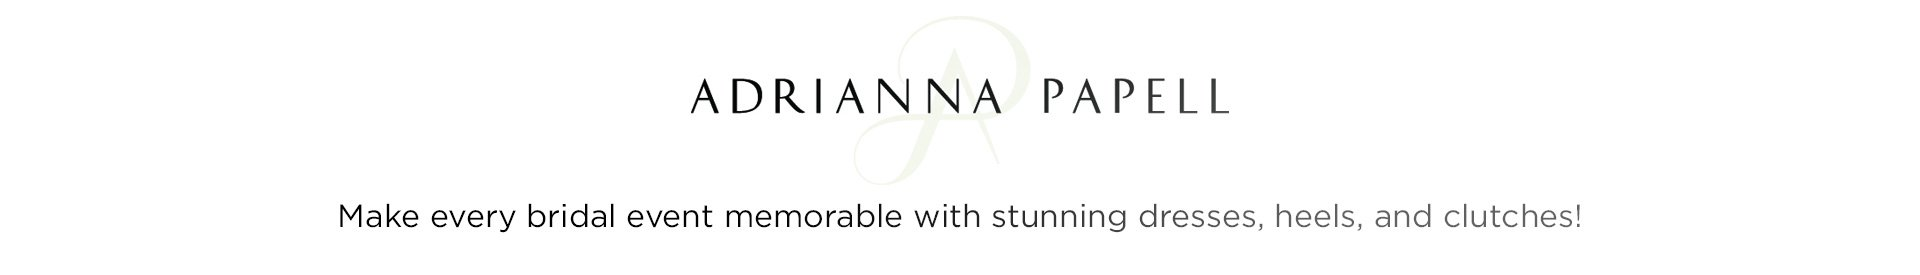 Adrianna Papell. Make every bridal event memorable with stunning dresses, heels, and clutches!